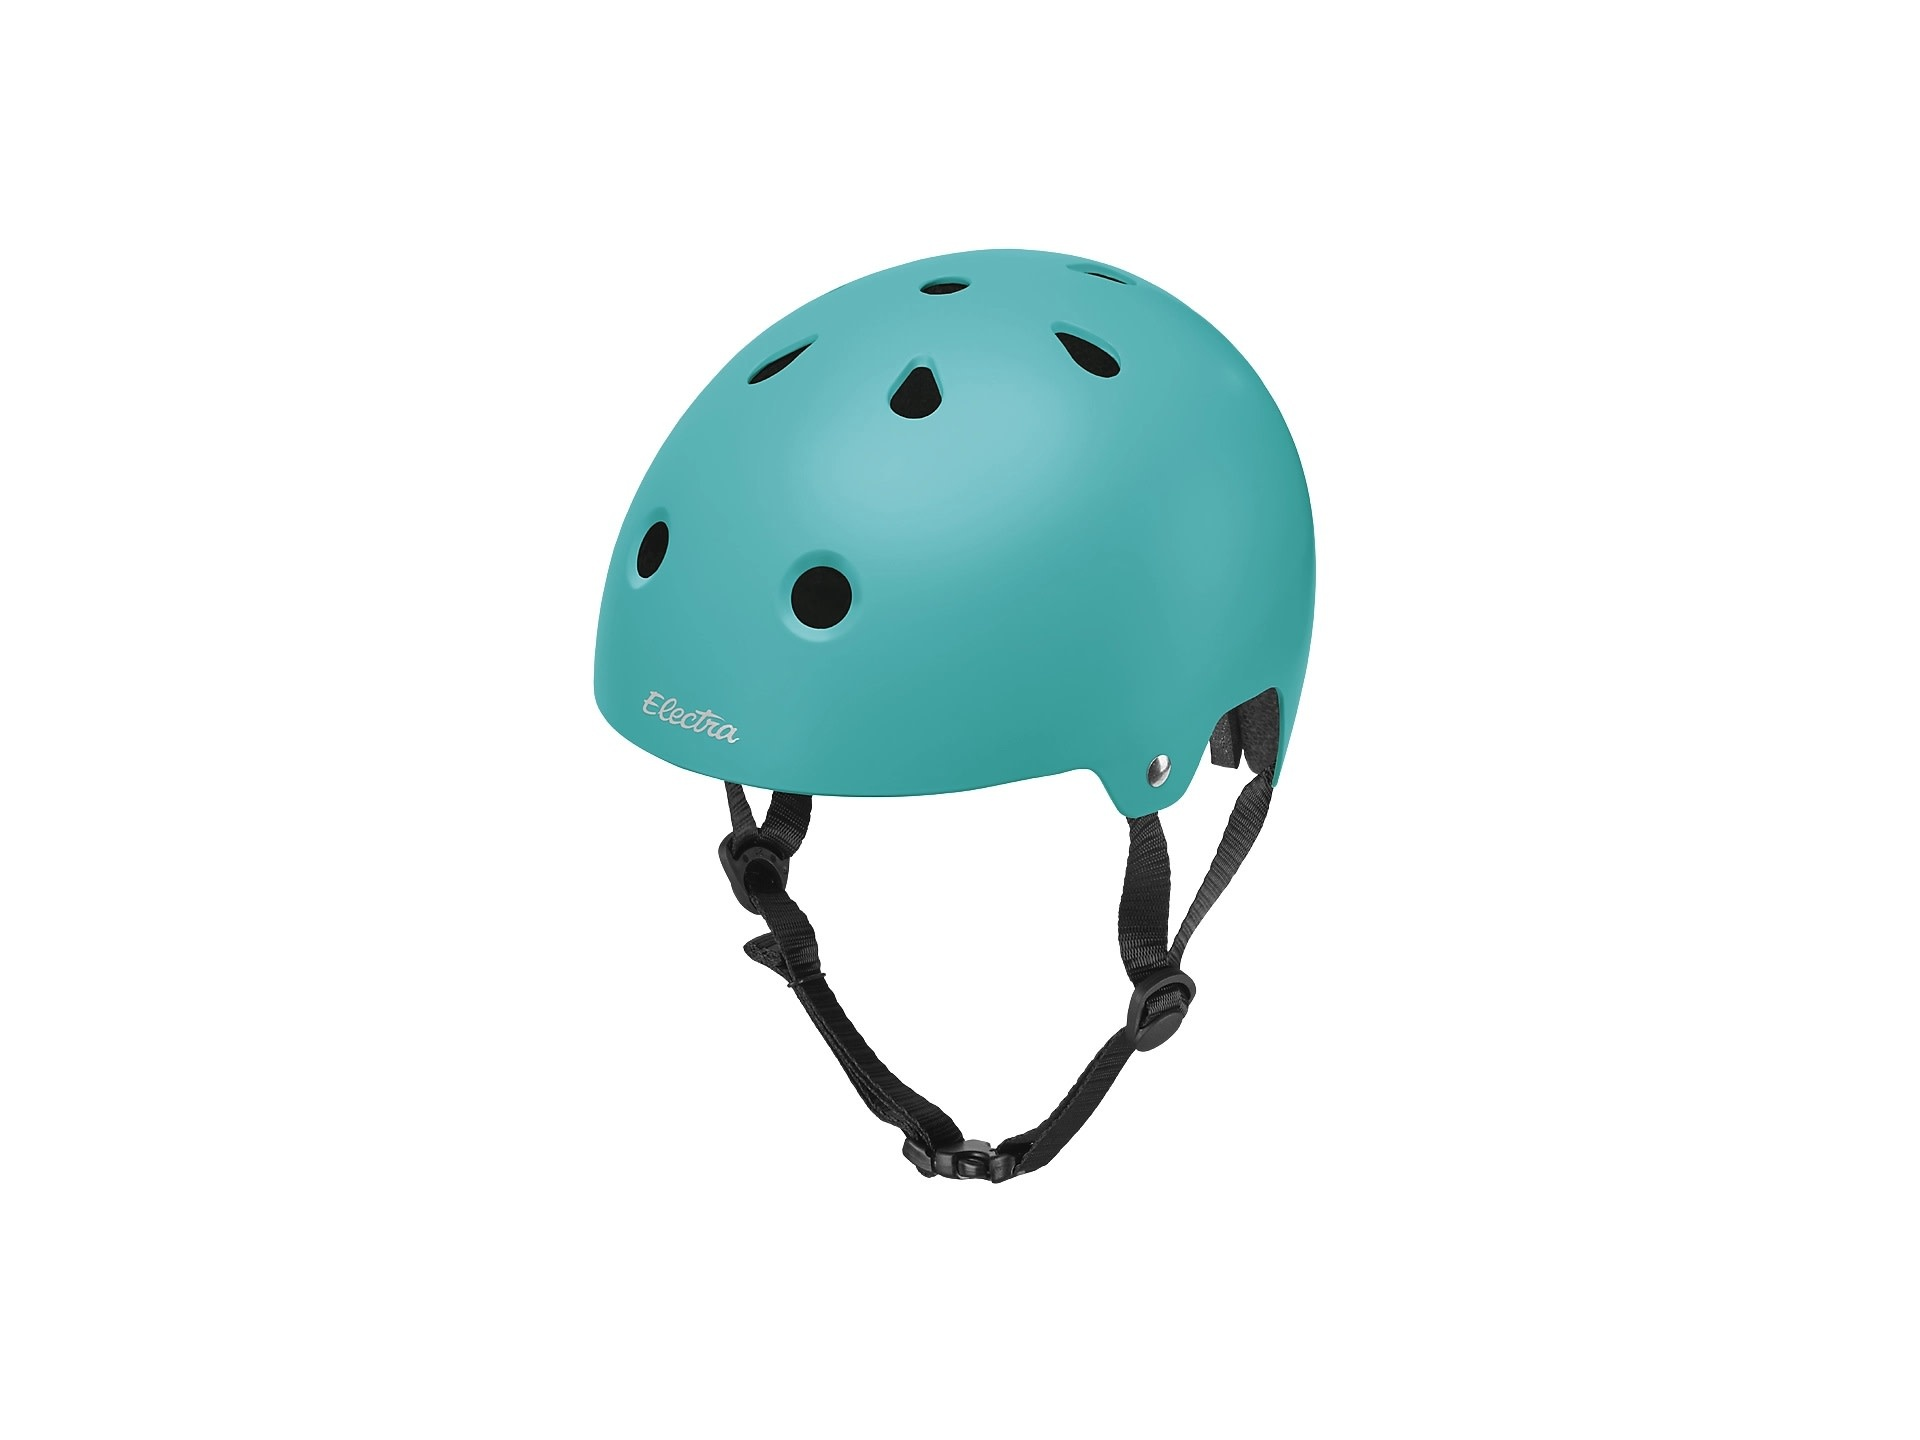 Electra Electra Lifestyle Helmet - Tropical Punch Teal